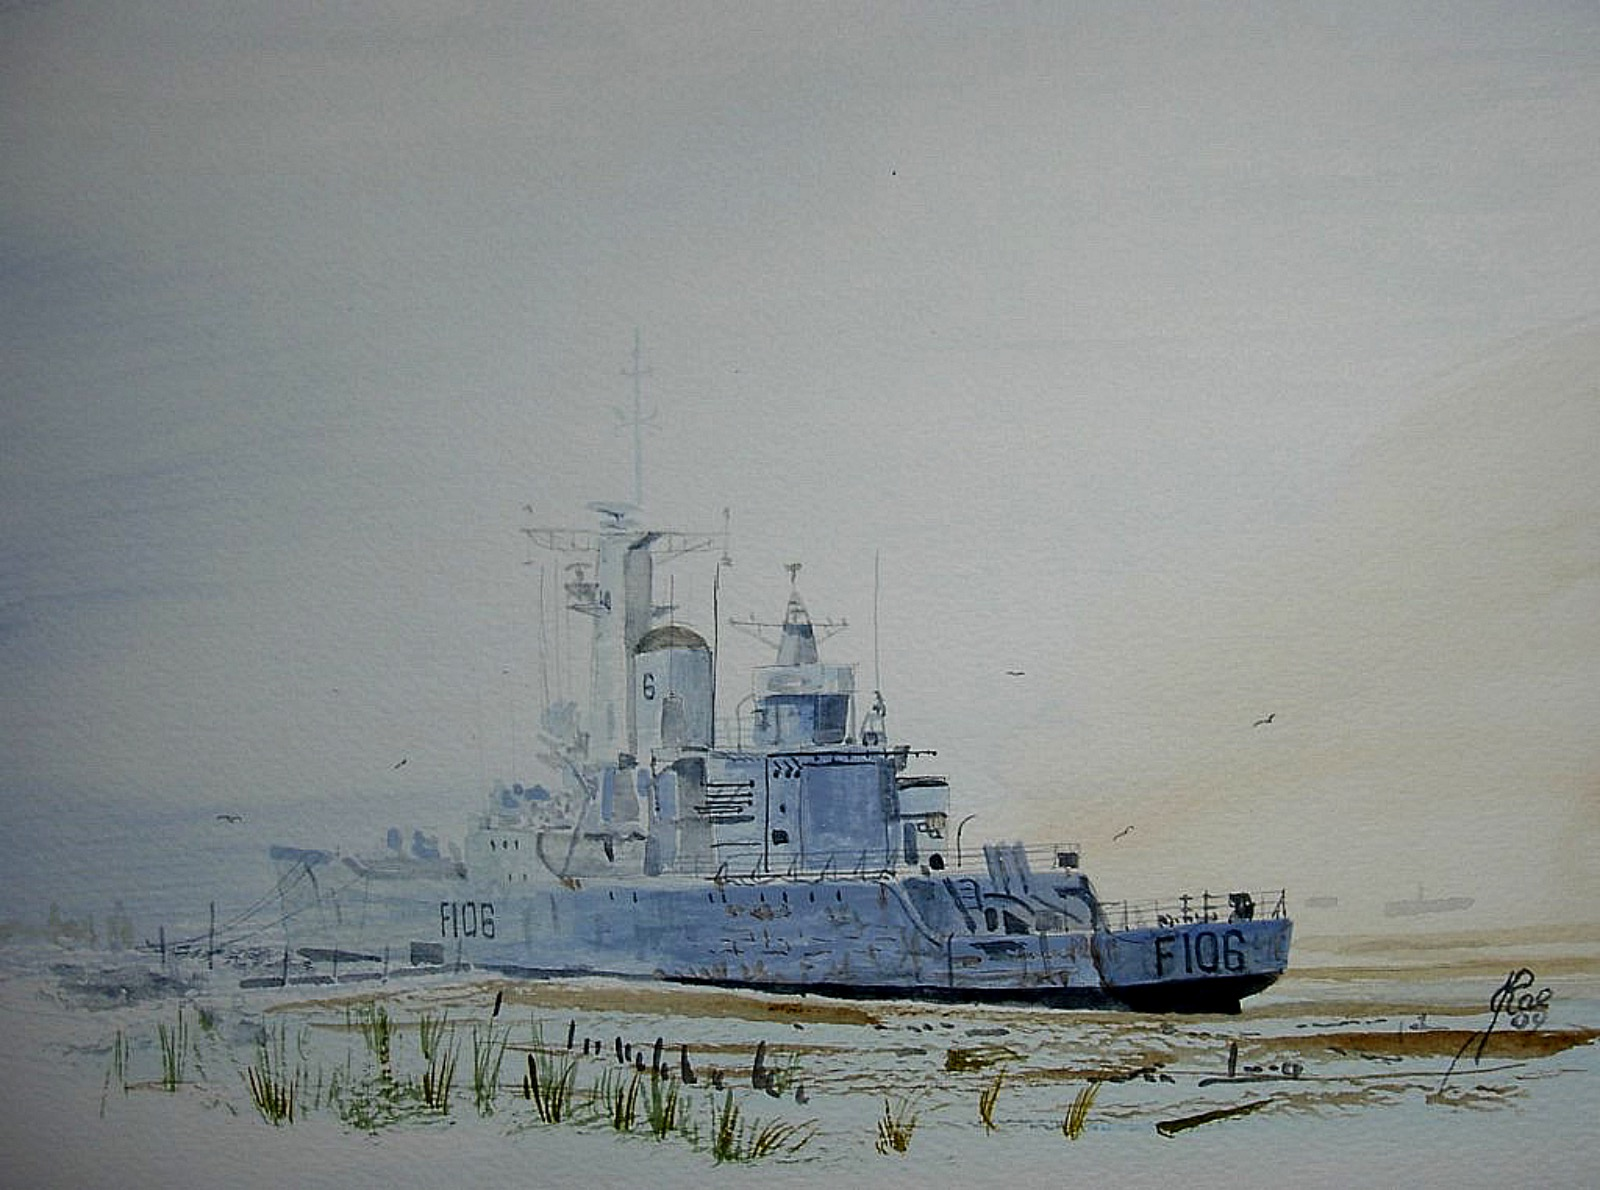 HMS Brighton awaiting disposal. Painted at low tide, didn't like it so painted the tide in.! 89511994_1470051909841770_7010573189096931328_o